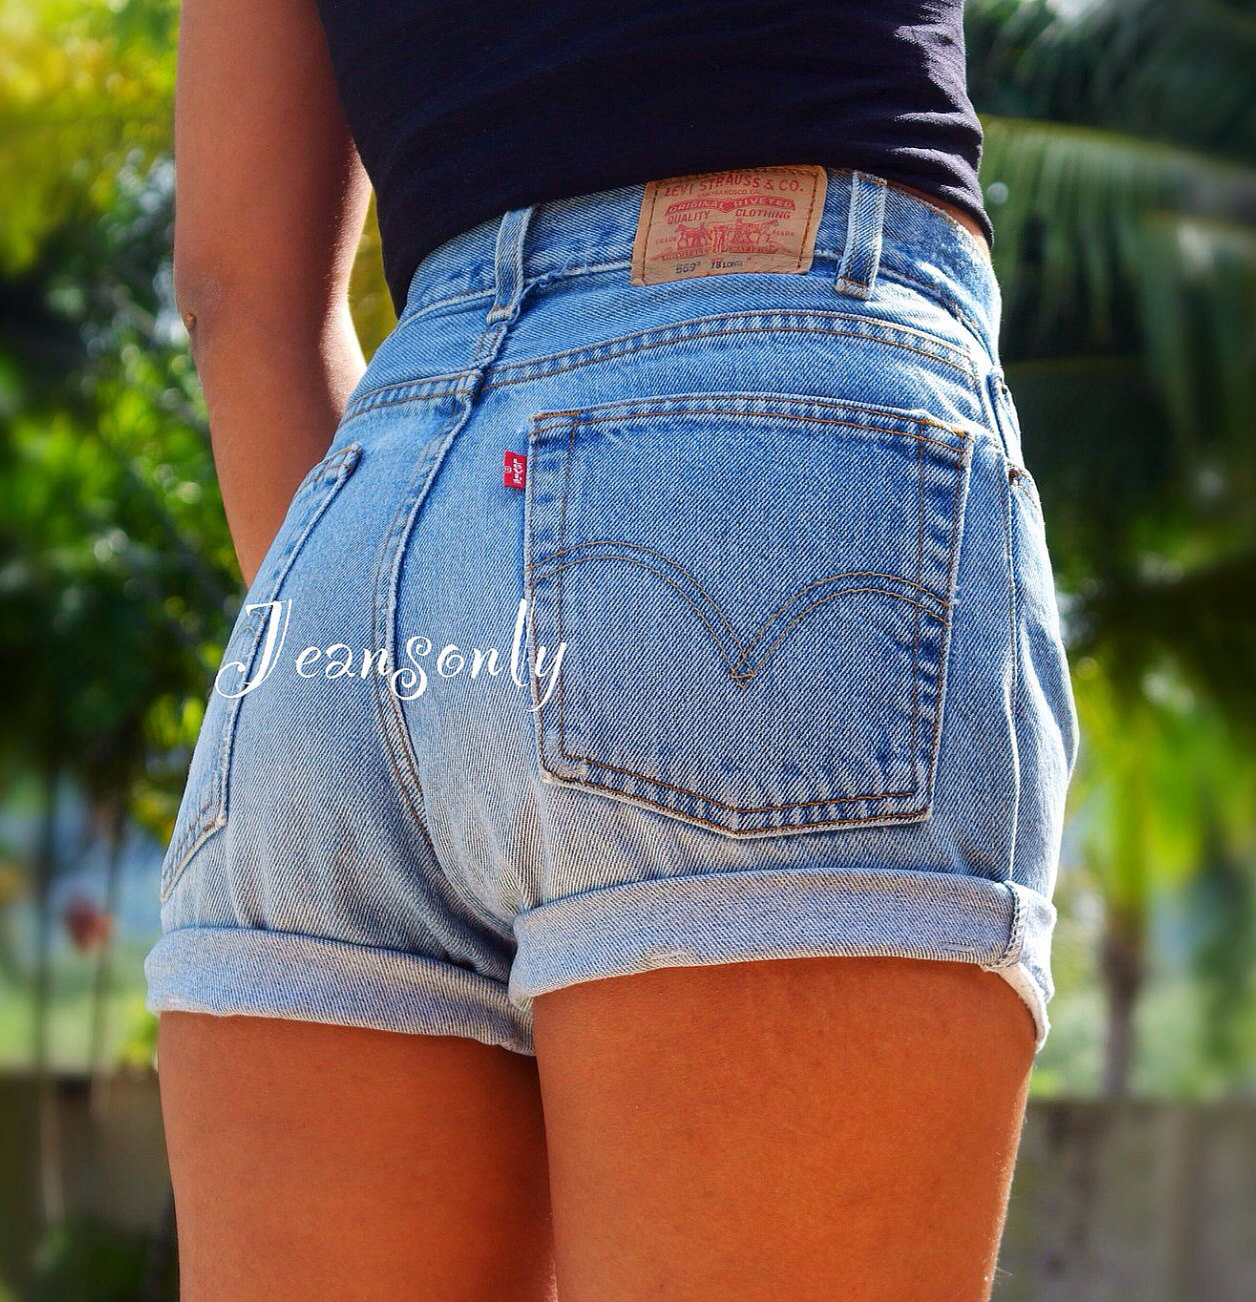 Levis high waisted denim shorts Plus size jeans shorts by Jeansonly